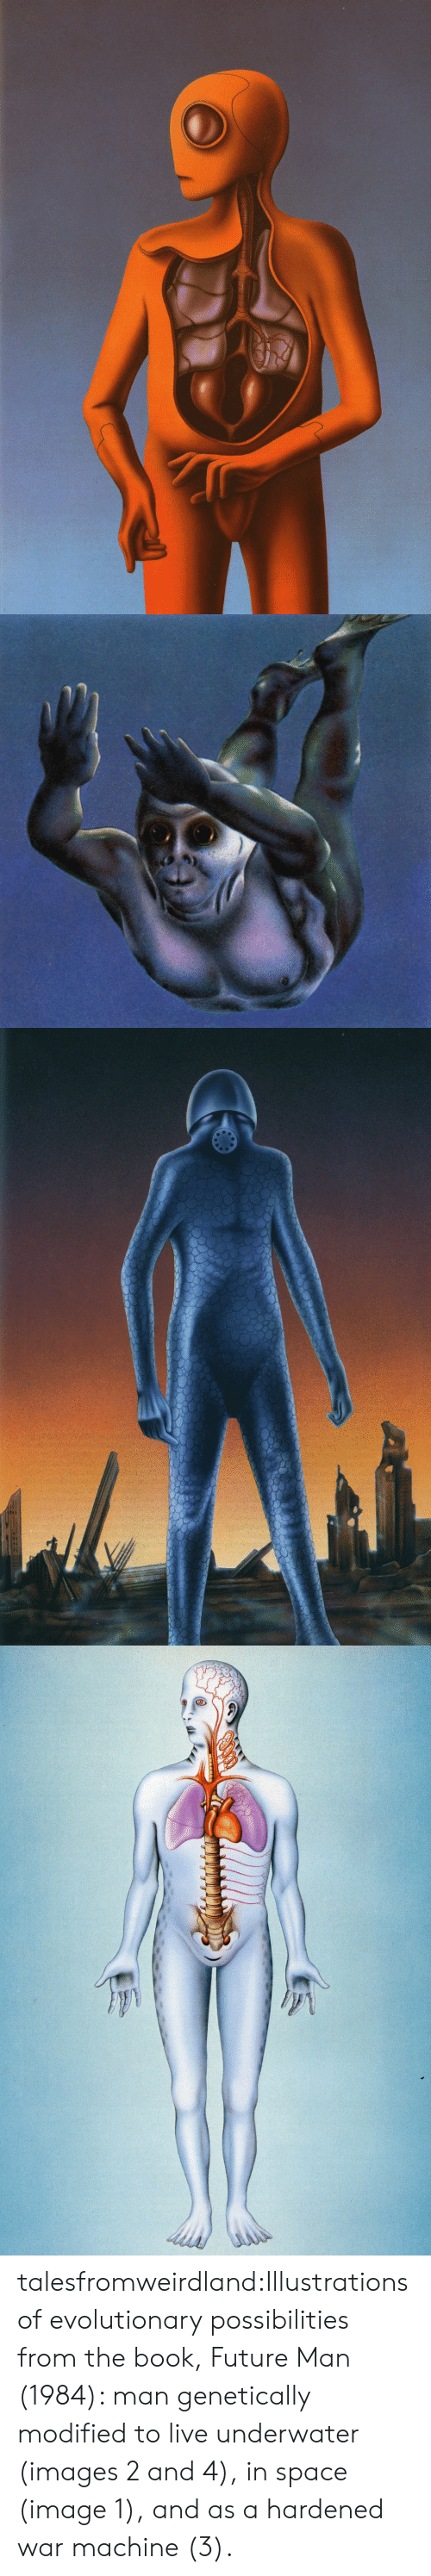 War Machine: talesfromweirdland:Illustrations of evolutionary possibilities from the book, Future Man (1984): man genetically modified to live underwater (images 2 and 4), in space (image 1), and as a hardened war machine (3).